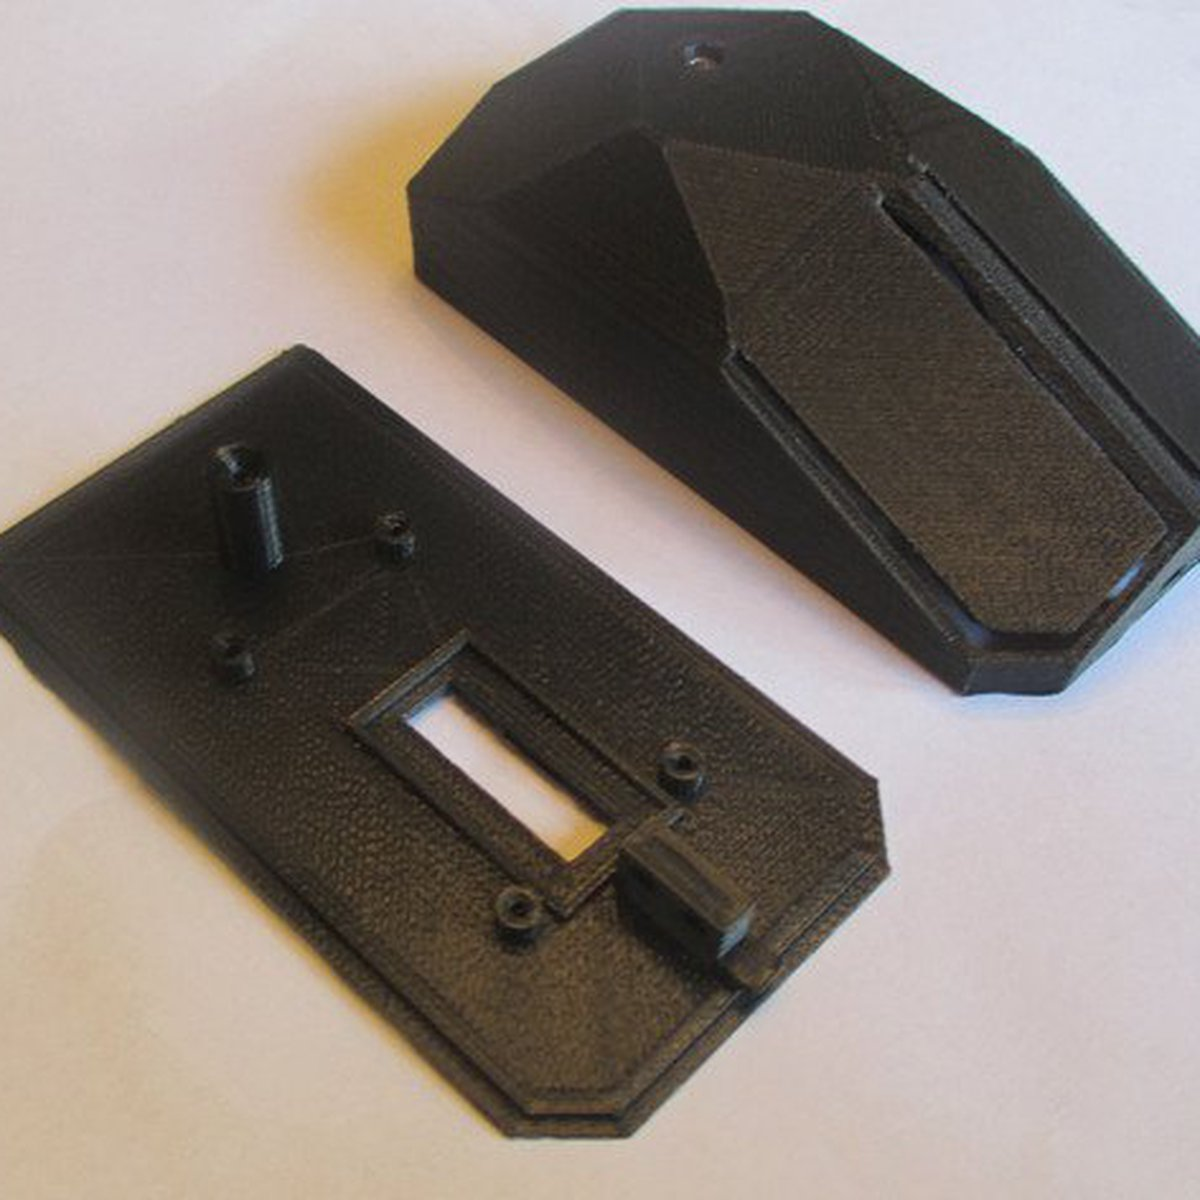 3D Printed mouse and hardware Kit from tom10122 on Tindie